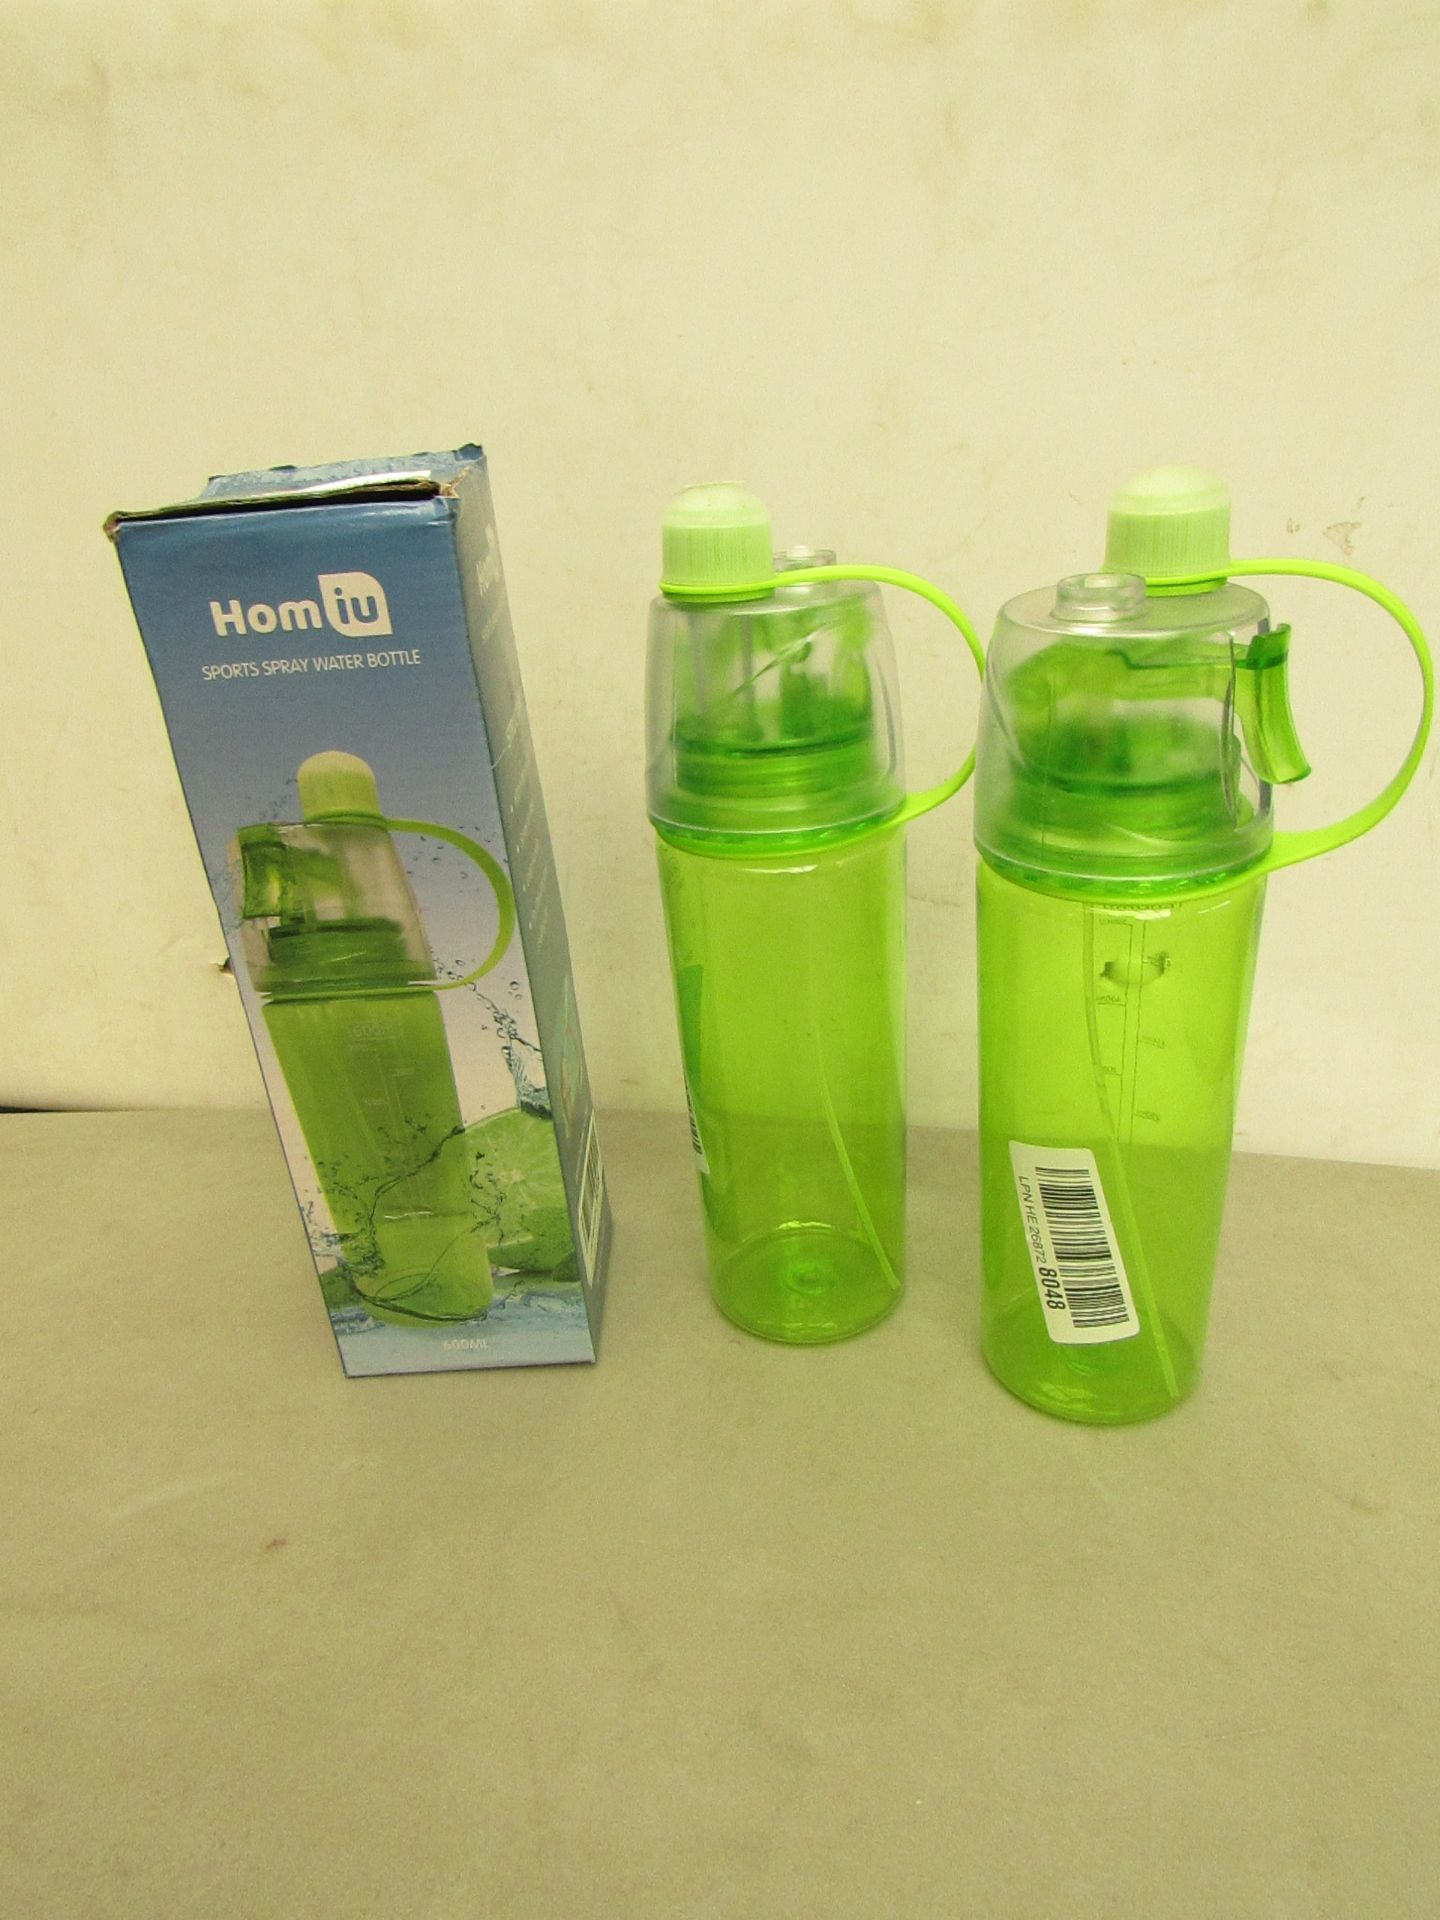 Lotto 13 - 3 x Homiu Sports Spray Water Bottle, 1 is boxed